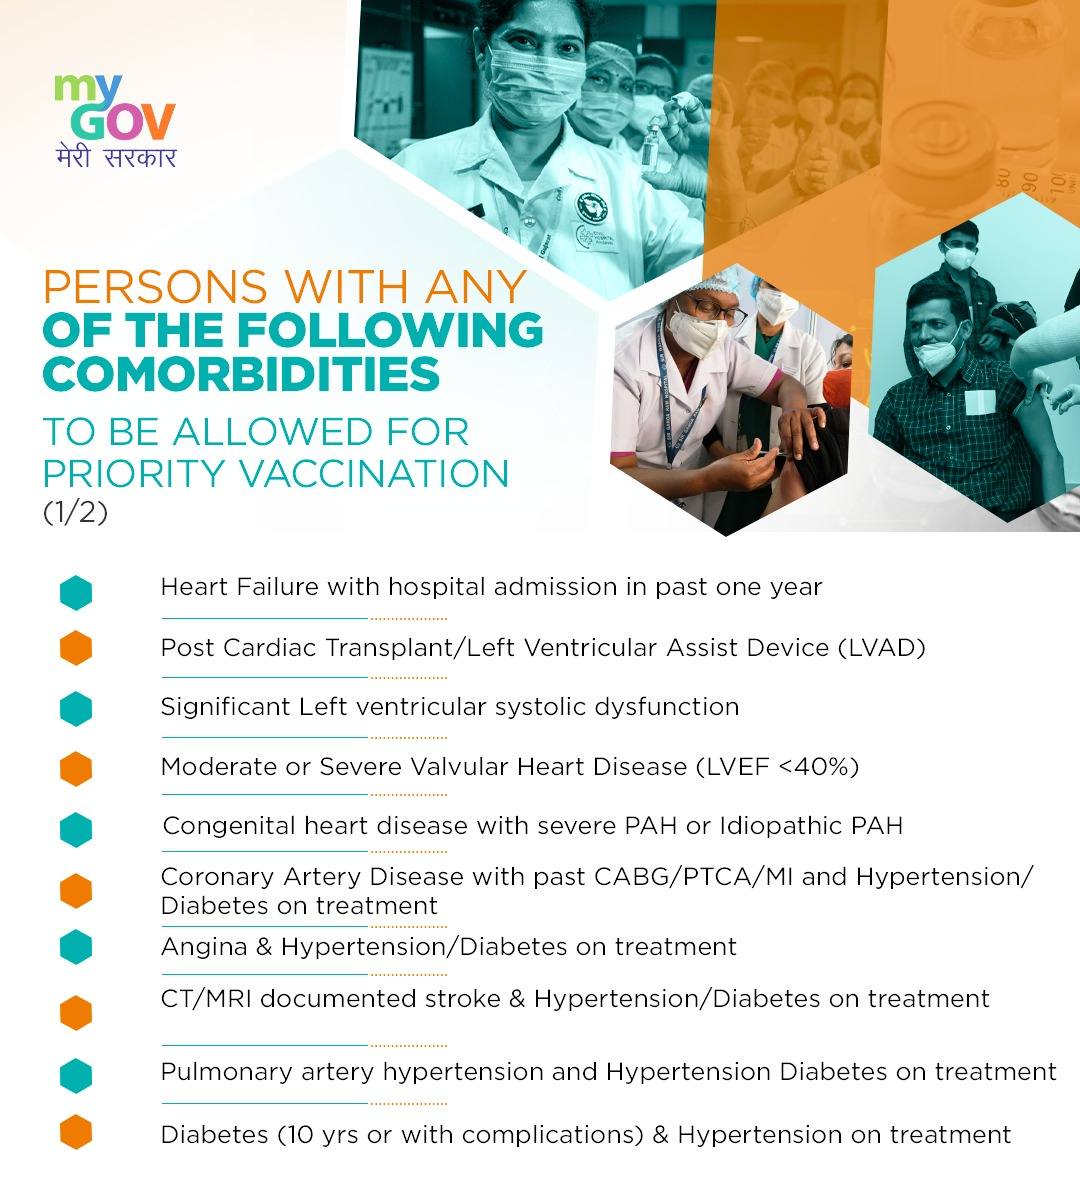 While the second phase of COVID-19 vaccination in India started, Centre issued clarification on CoWIN app for registration for COVID-19 vaccine.